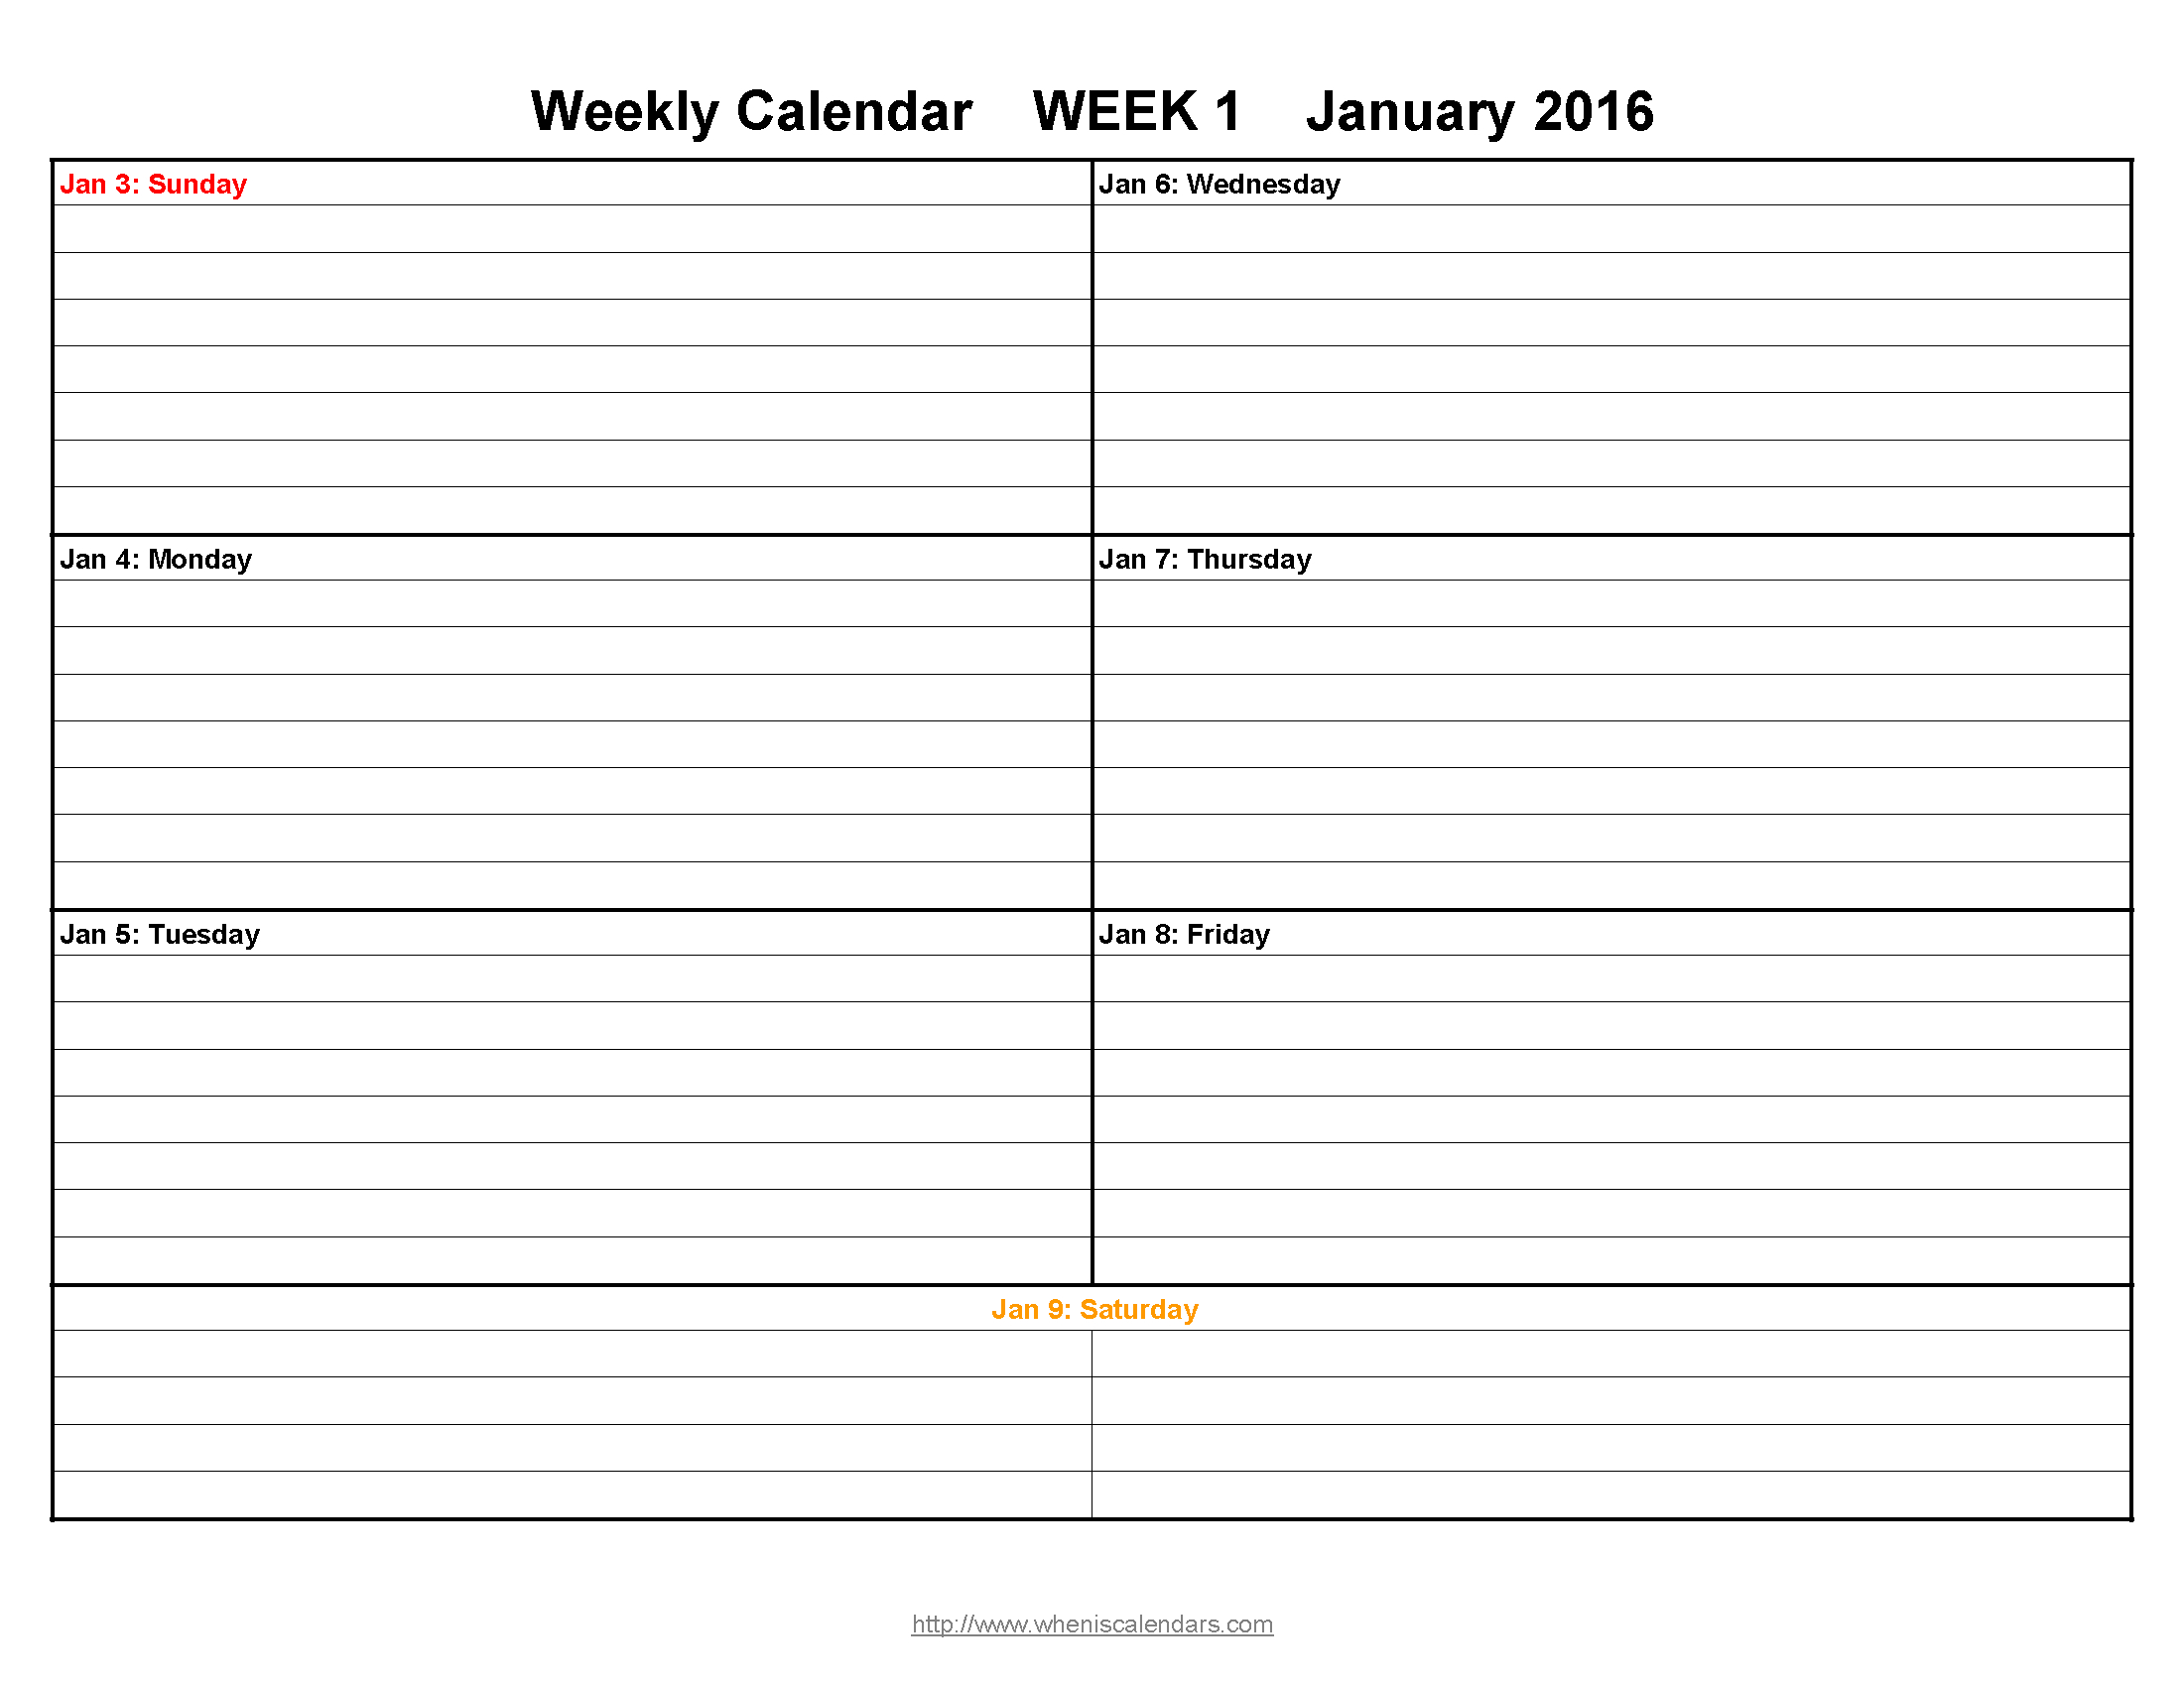 Schedule Template Printable Weekly Calendar December To February Two within Blank Lined Weekly Printable Calendar